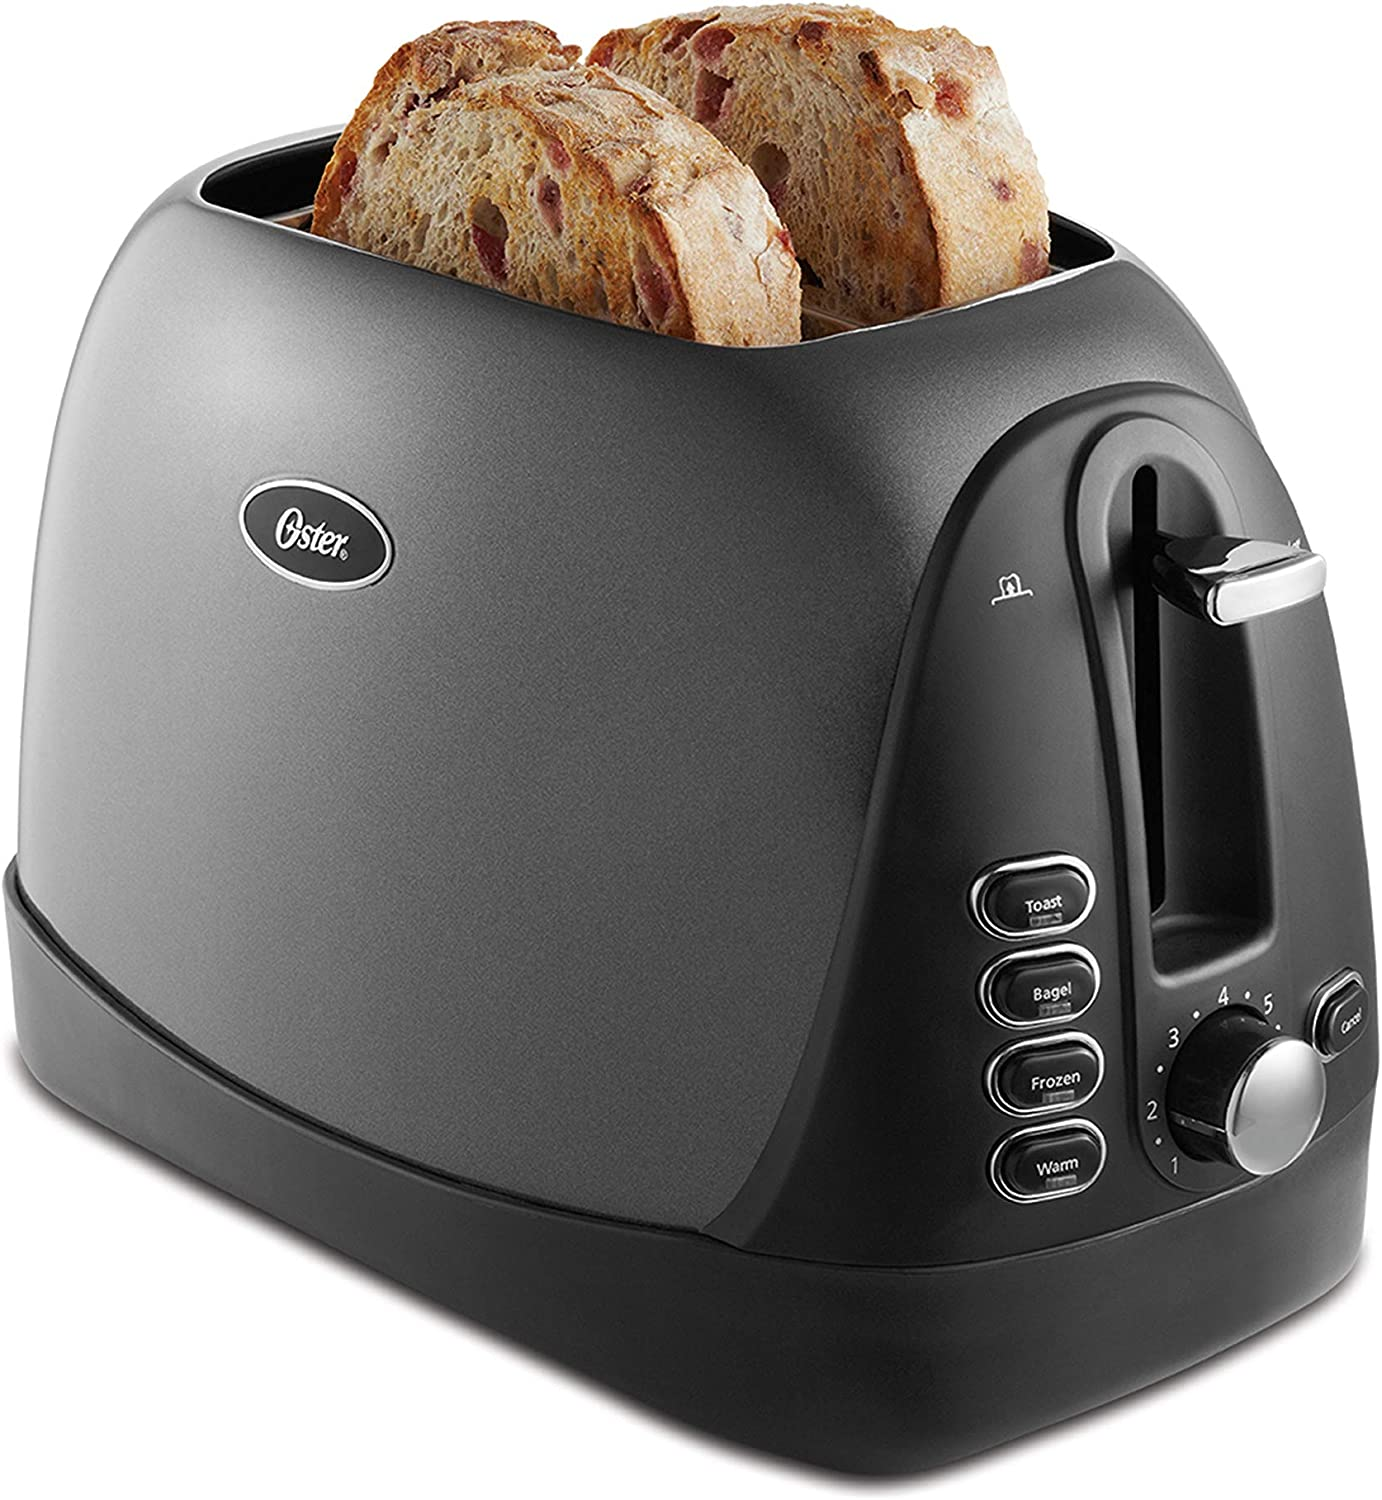 Oster 2 Slice, Bread, Bagel Toaster, Metallic Grey